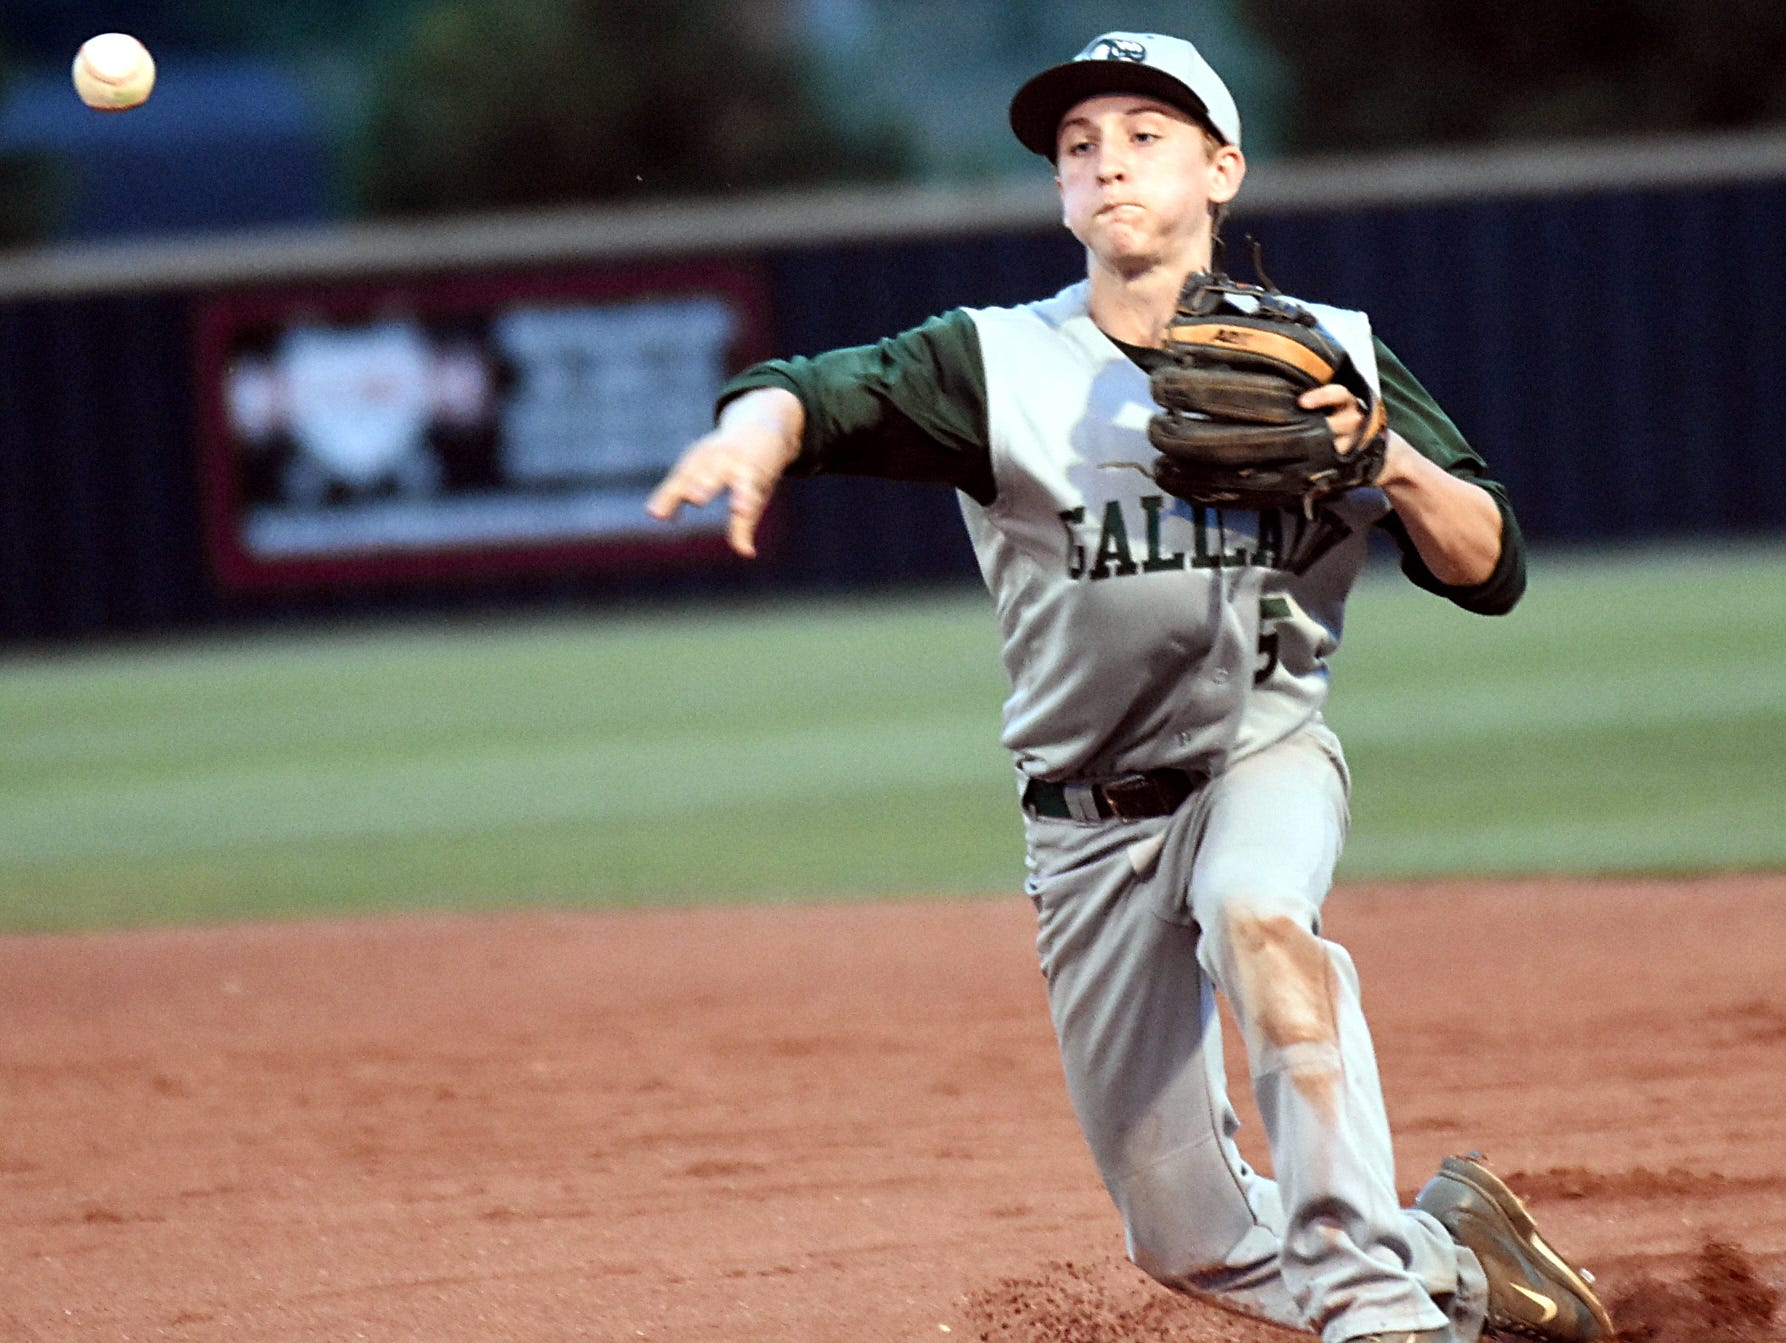 Gallatin High junior second baseman Nathan Kernell throws to first base for a third-inning putout.